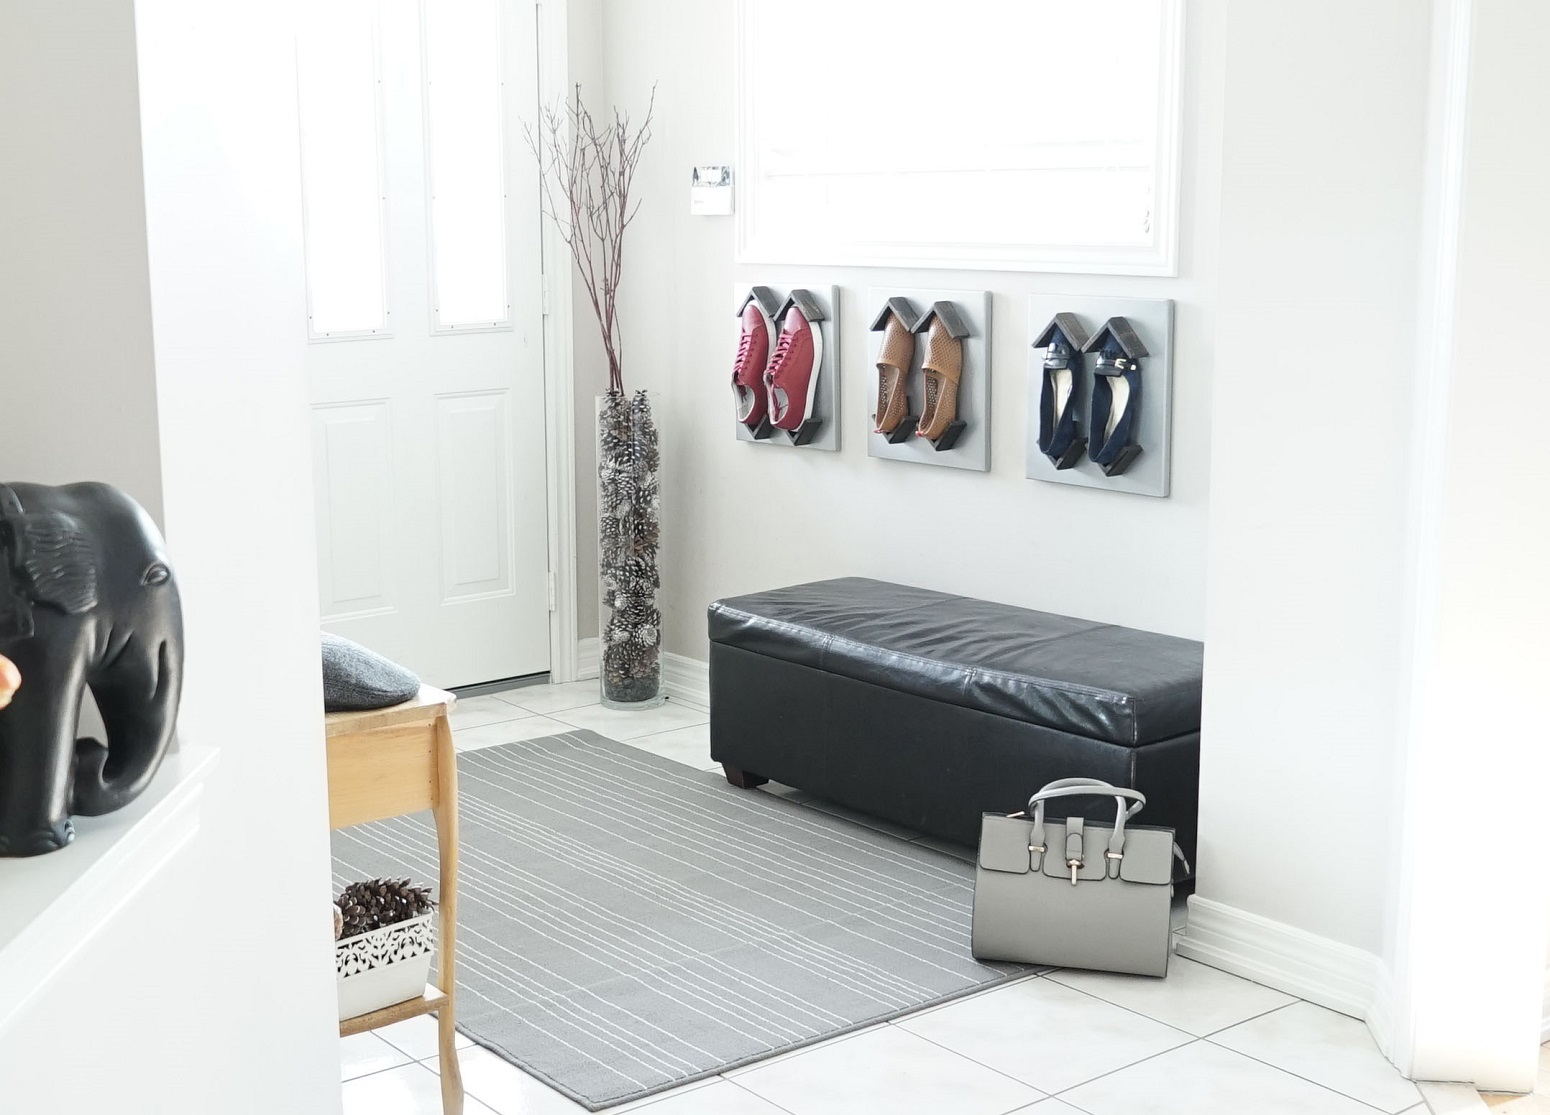 Shoeblox is a modern shoe storage remedy for small spaces